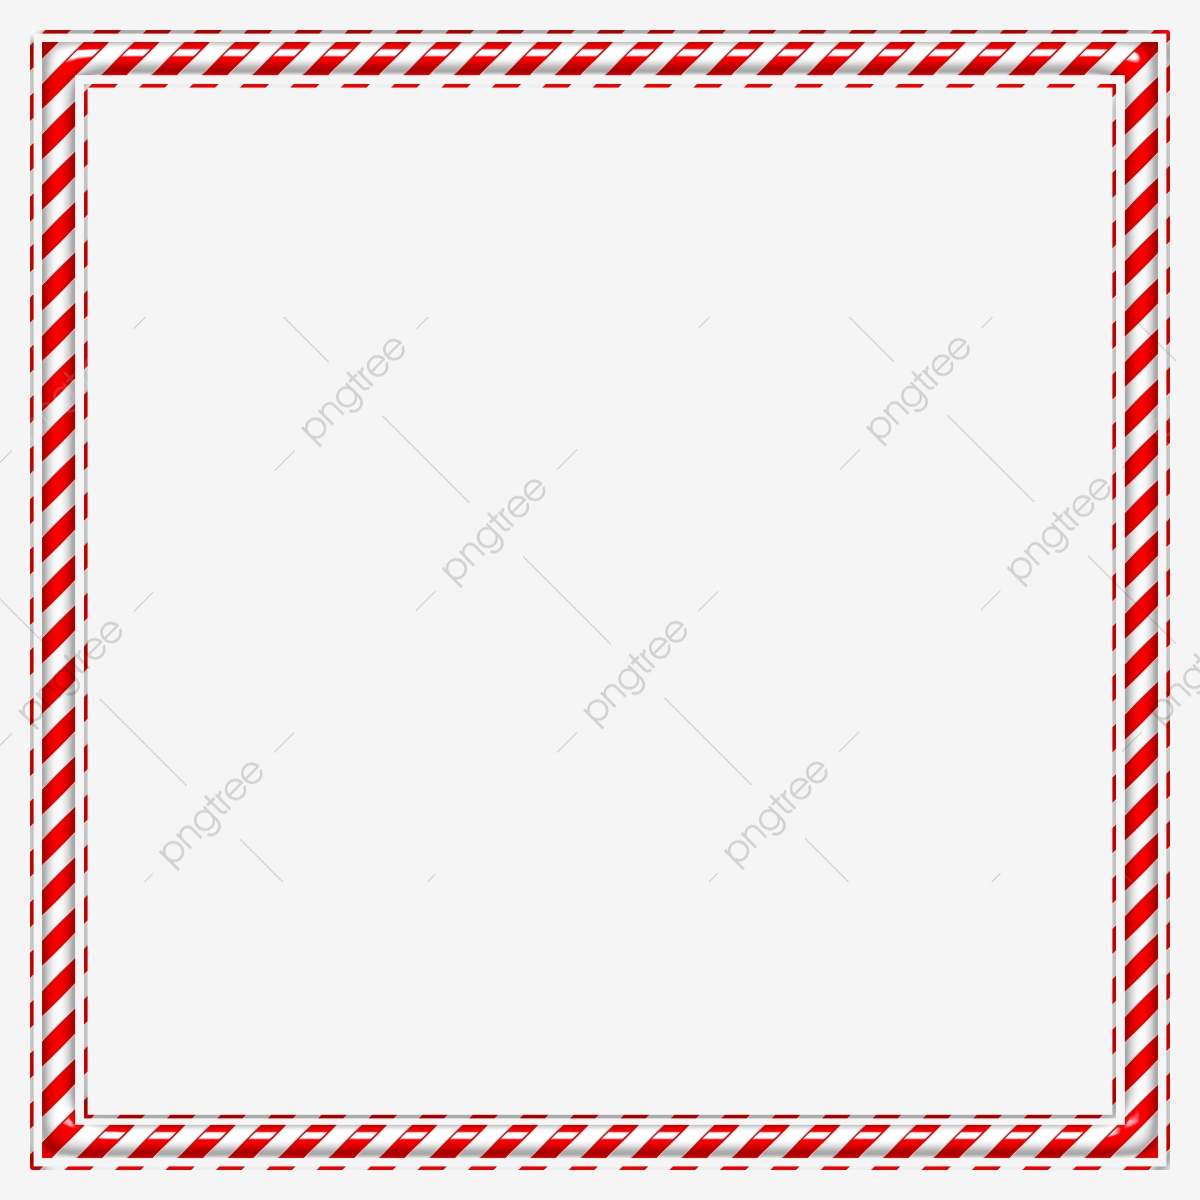 Red White Candy Striped Shining Embossed Square Frame Border.